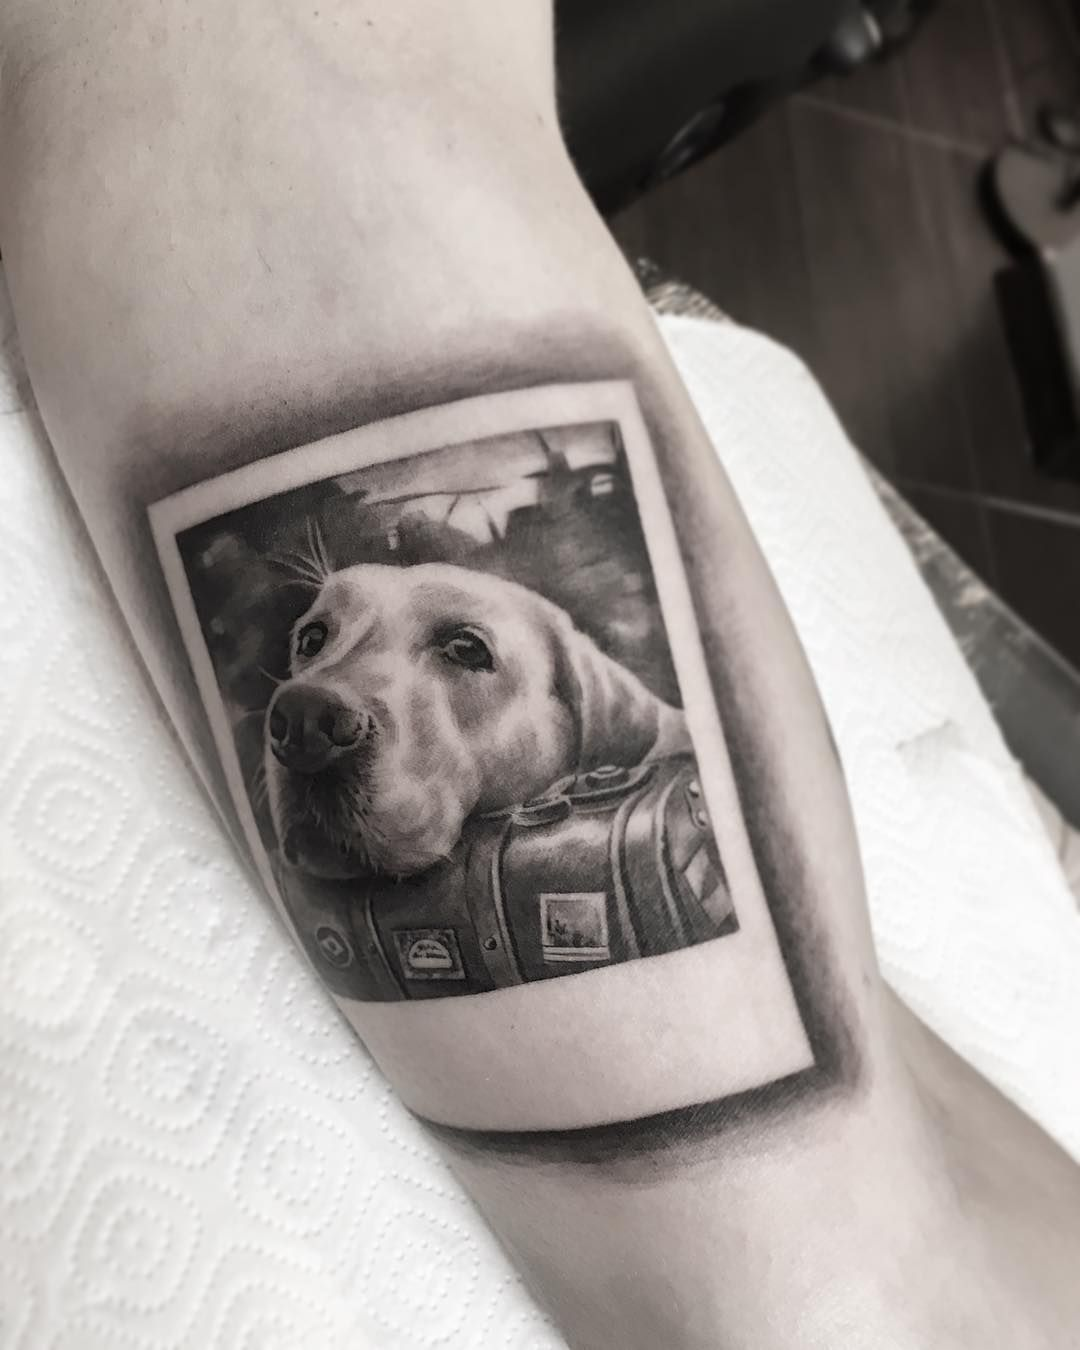 Tattoo artist Zinaida Pasko color and black and grey portrait realism minimalism | Moscow Russia | #inkpplcom #colortattoo #blackandgrey #realistictattoo #style #shopping #styles #outfit #pretty #girl #girls #beauty #beautiful #me #cute #stylish #photooftheday #swag #dress #shoes #diy #design #fashion #Tattoo